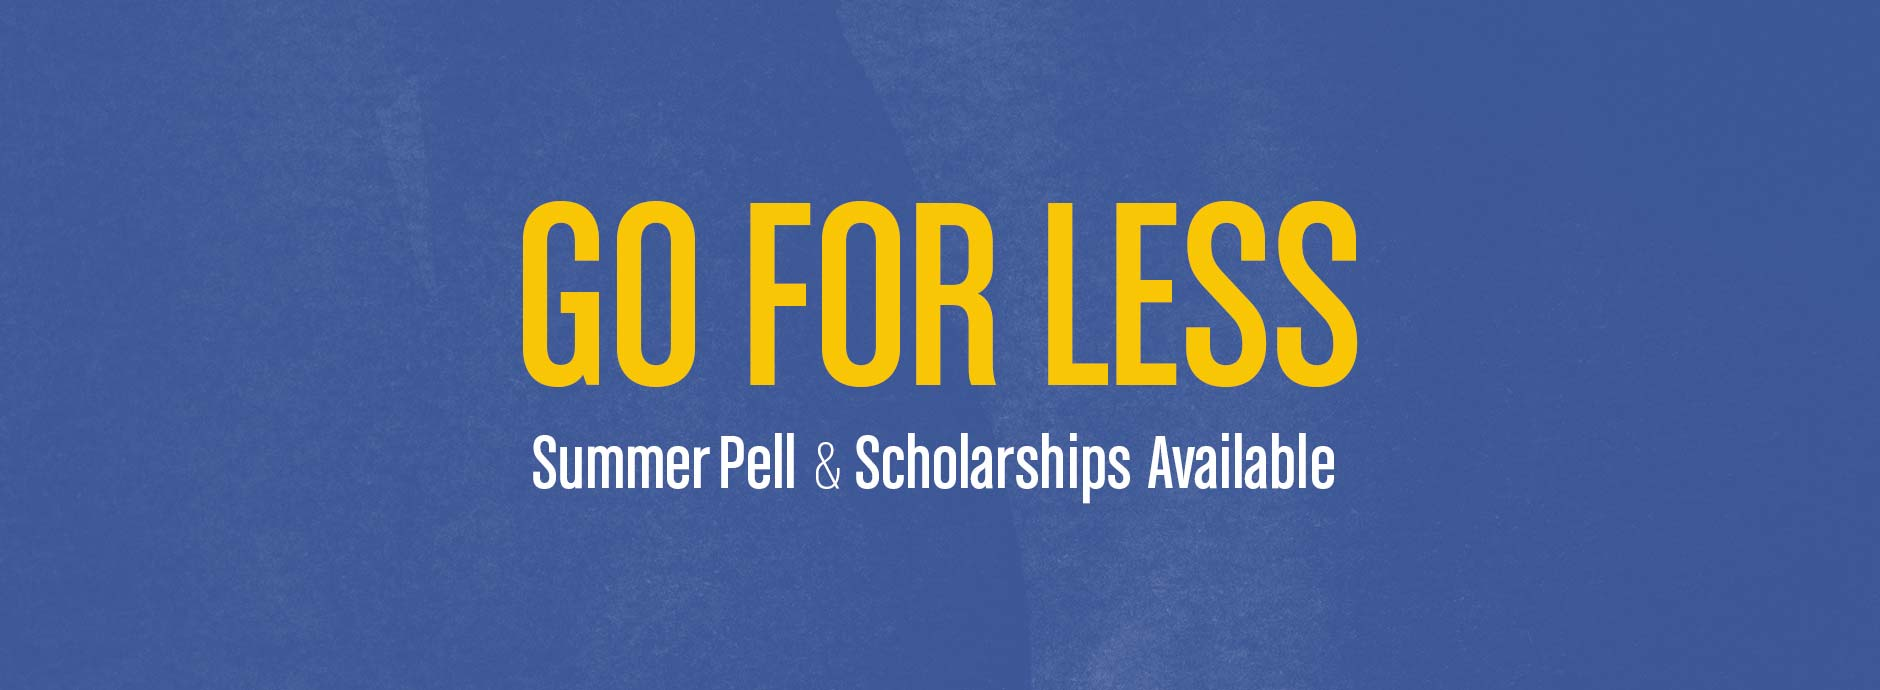 GO for Less: Summer Pell & Scholarships Available